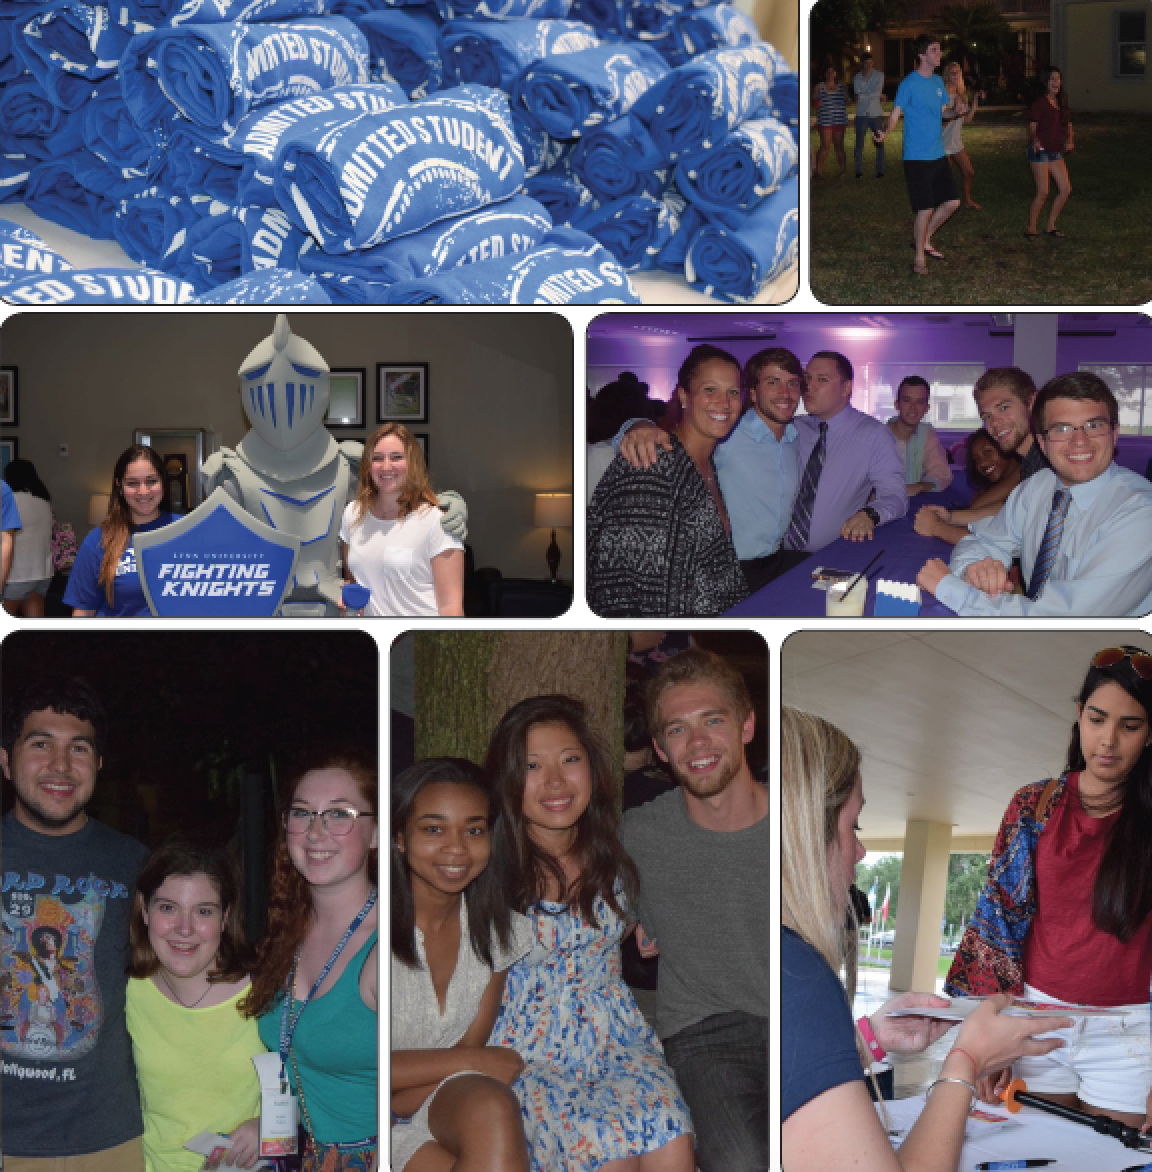 Above: Students enjoy a weekend full of fun with their Admitted Students. LU Photos.